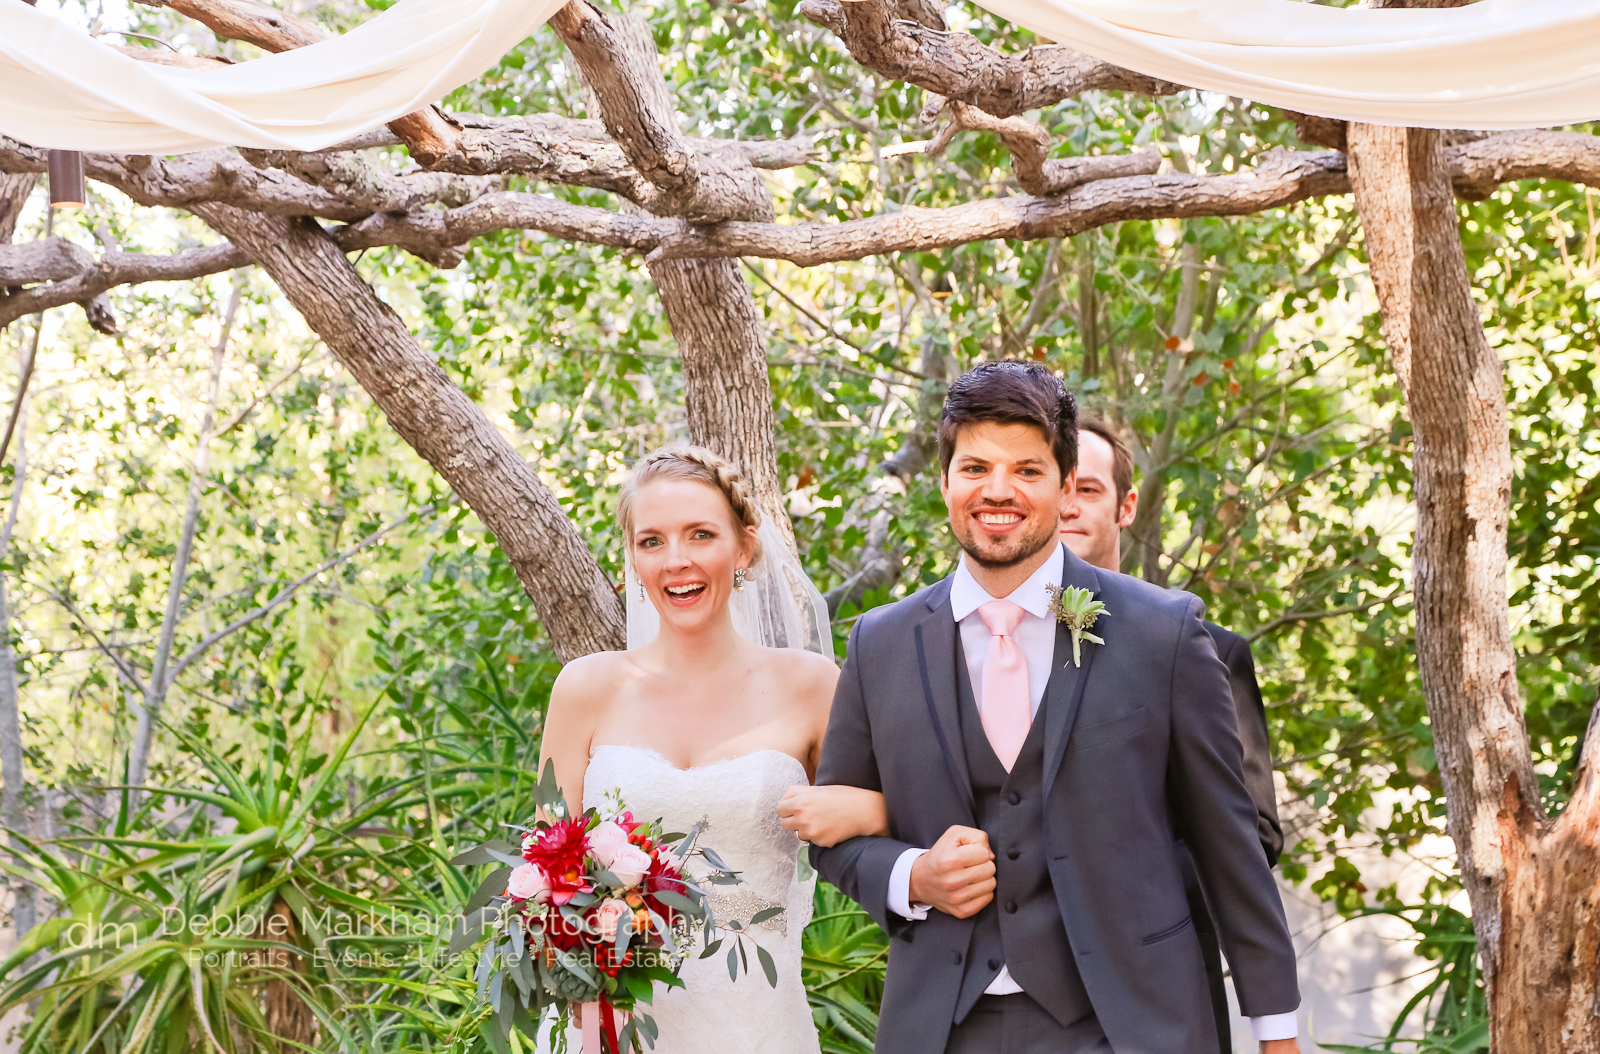 Debbie Markham Photography+Dalliedet House+San Luis Obispo+Garden Wedding+Fall Season